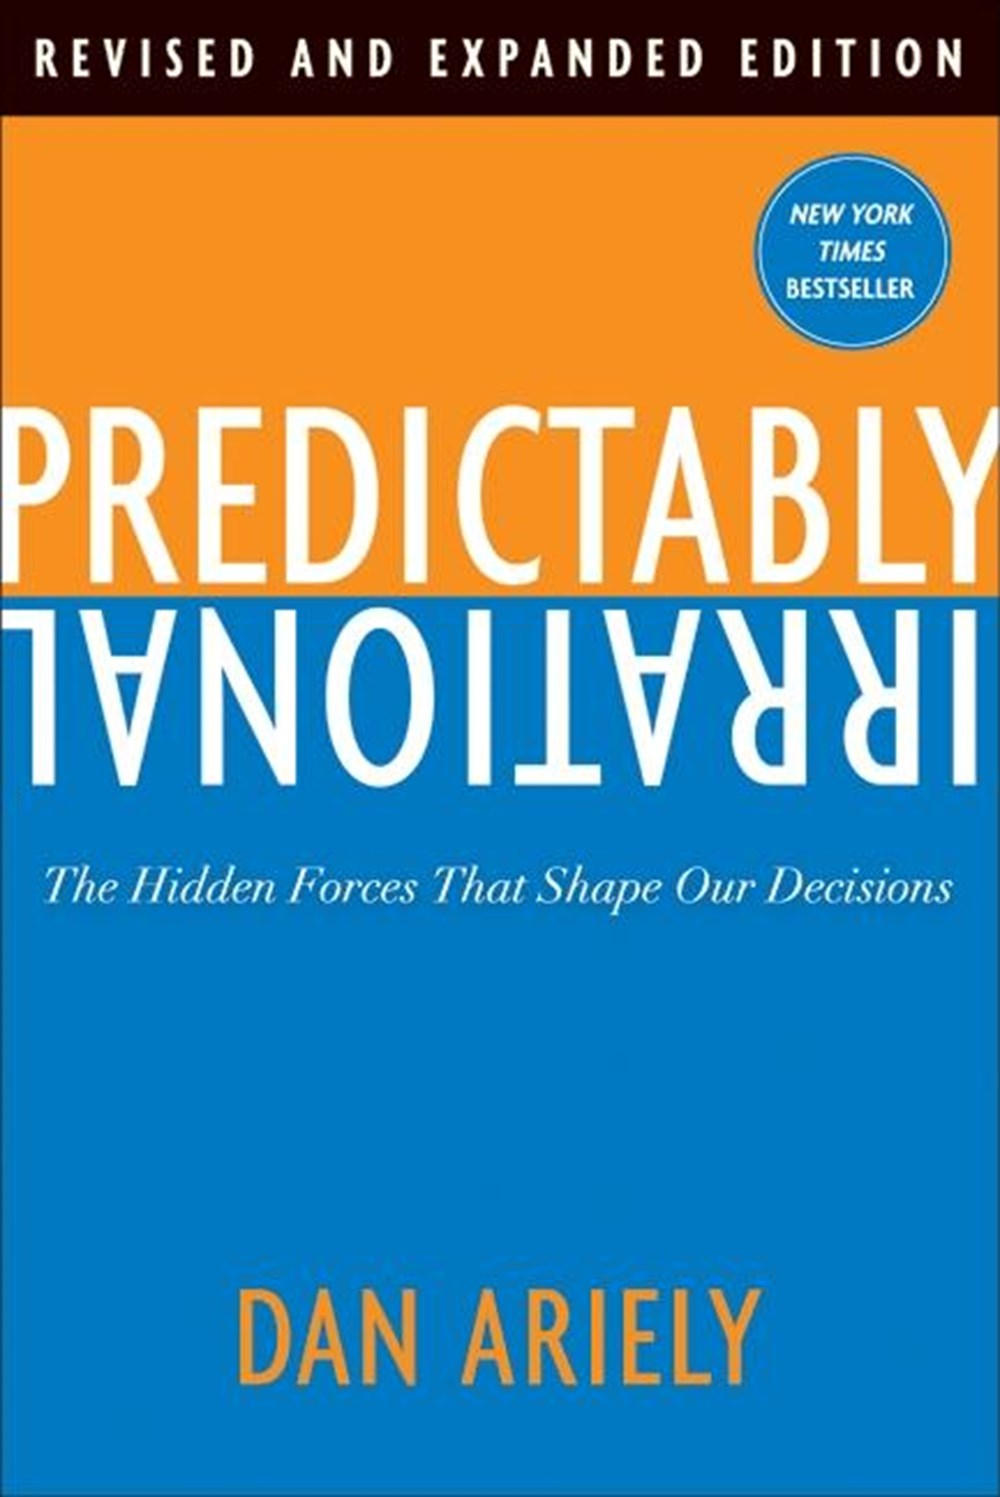 Predictably Irrational The Hidden Forces That Shape Our Decisions (Revised, Expanded)